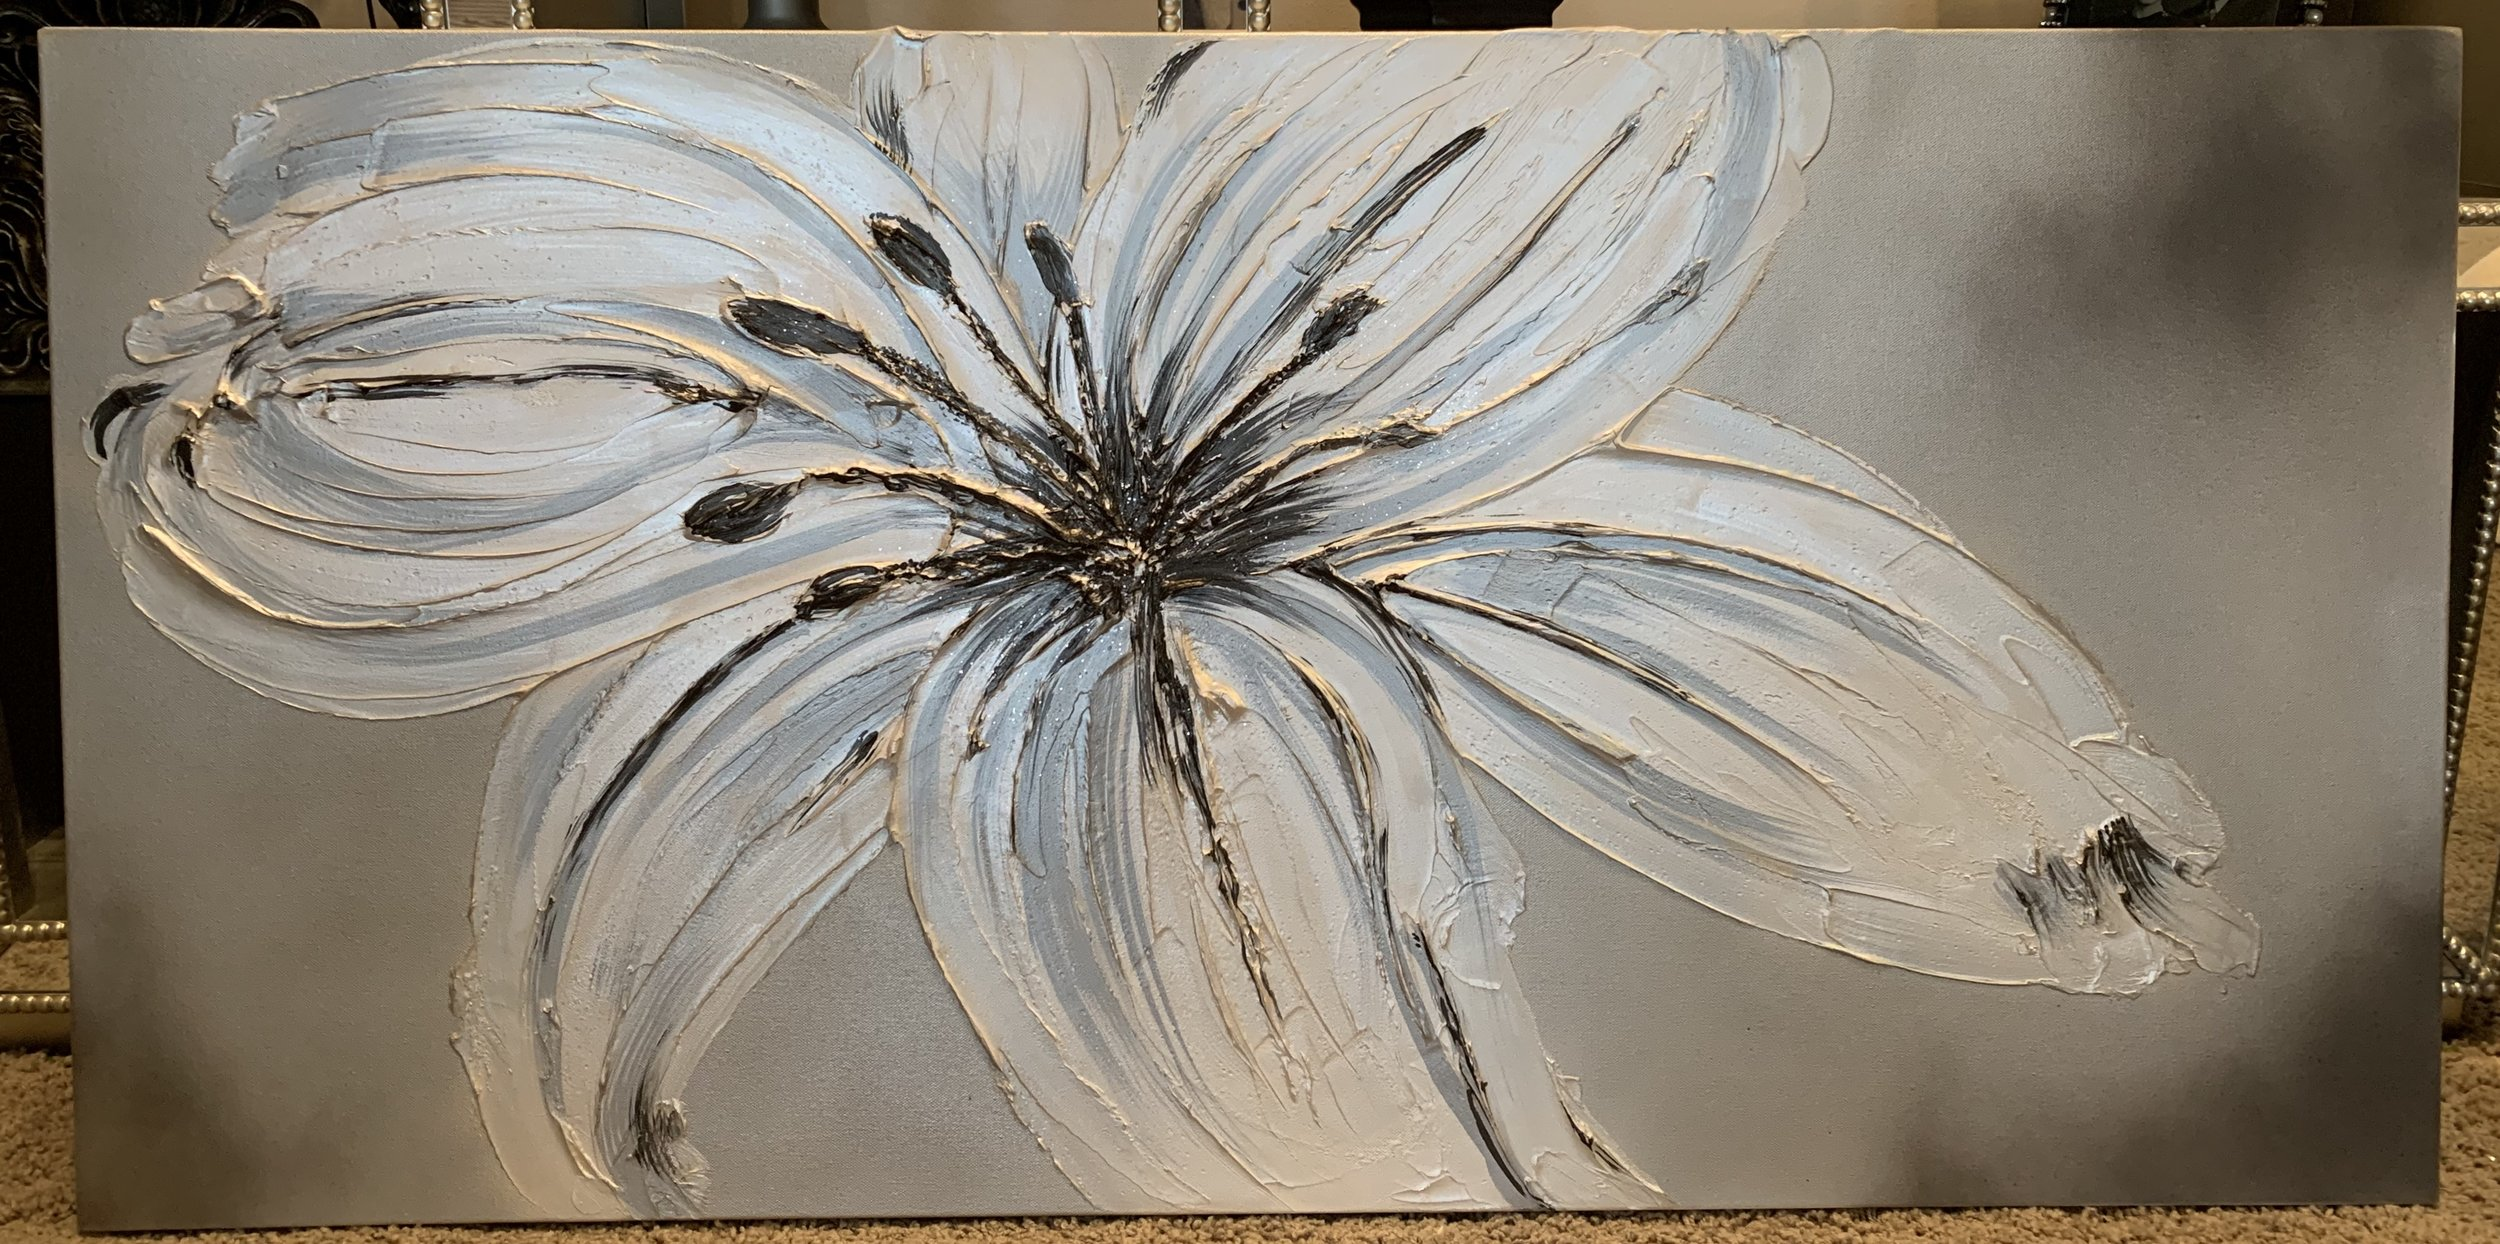 'Lily' is shown as a 24x48 and can be hung vertically as well. 'Lily' has a molted background and has lots of sparkle and glass in the center.